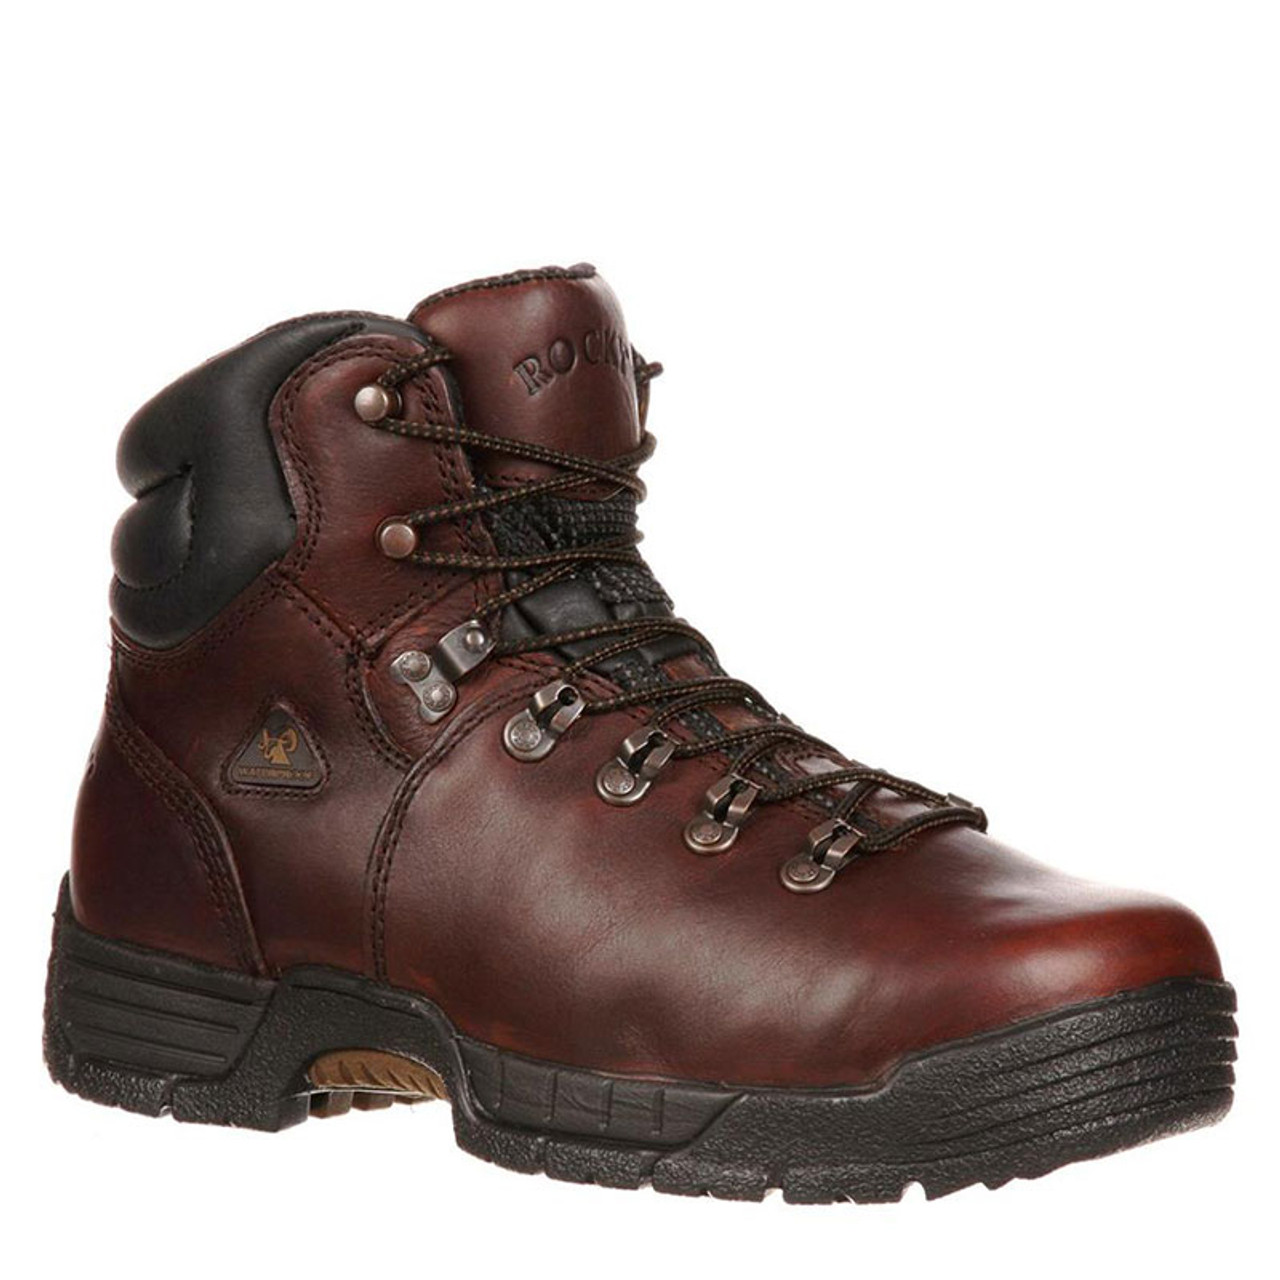 outlet volume large outlet online Rocky 6114 MOBILITE Wide Steel Toe Work Boots